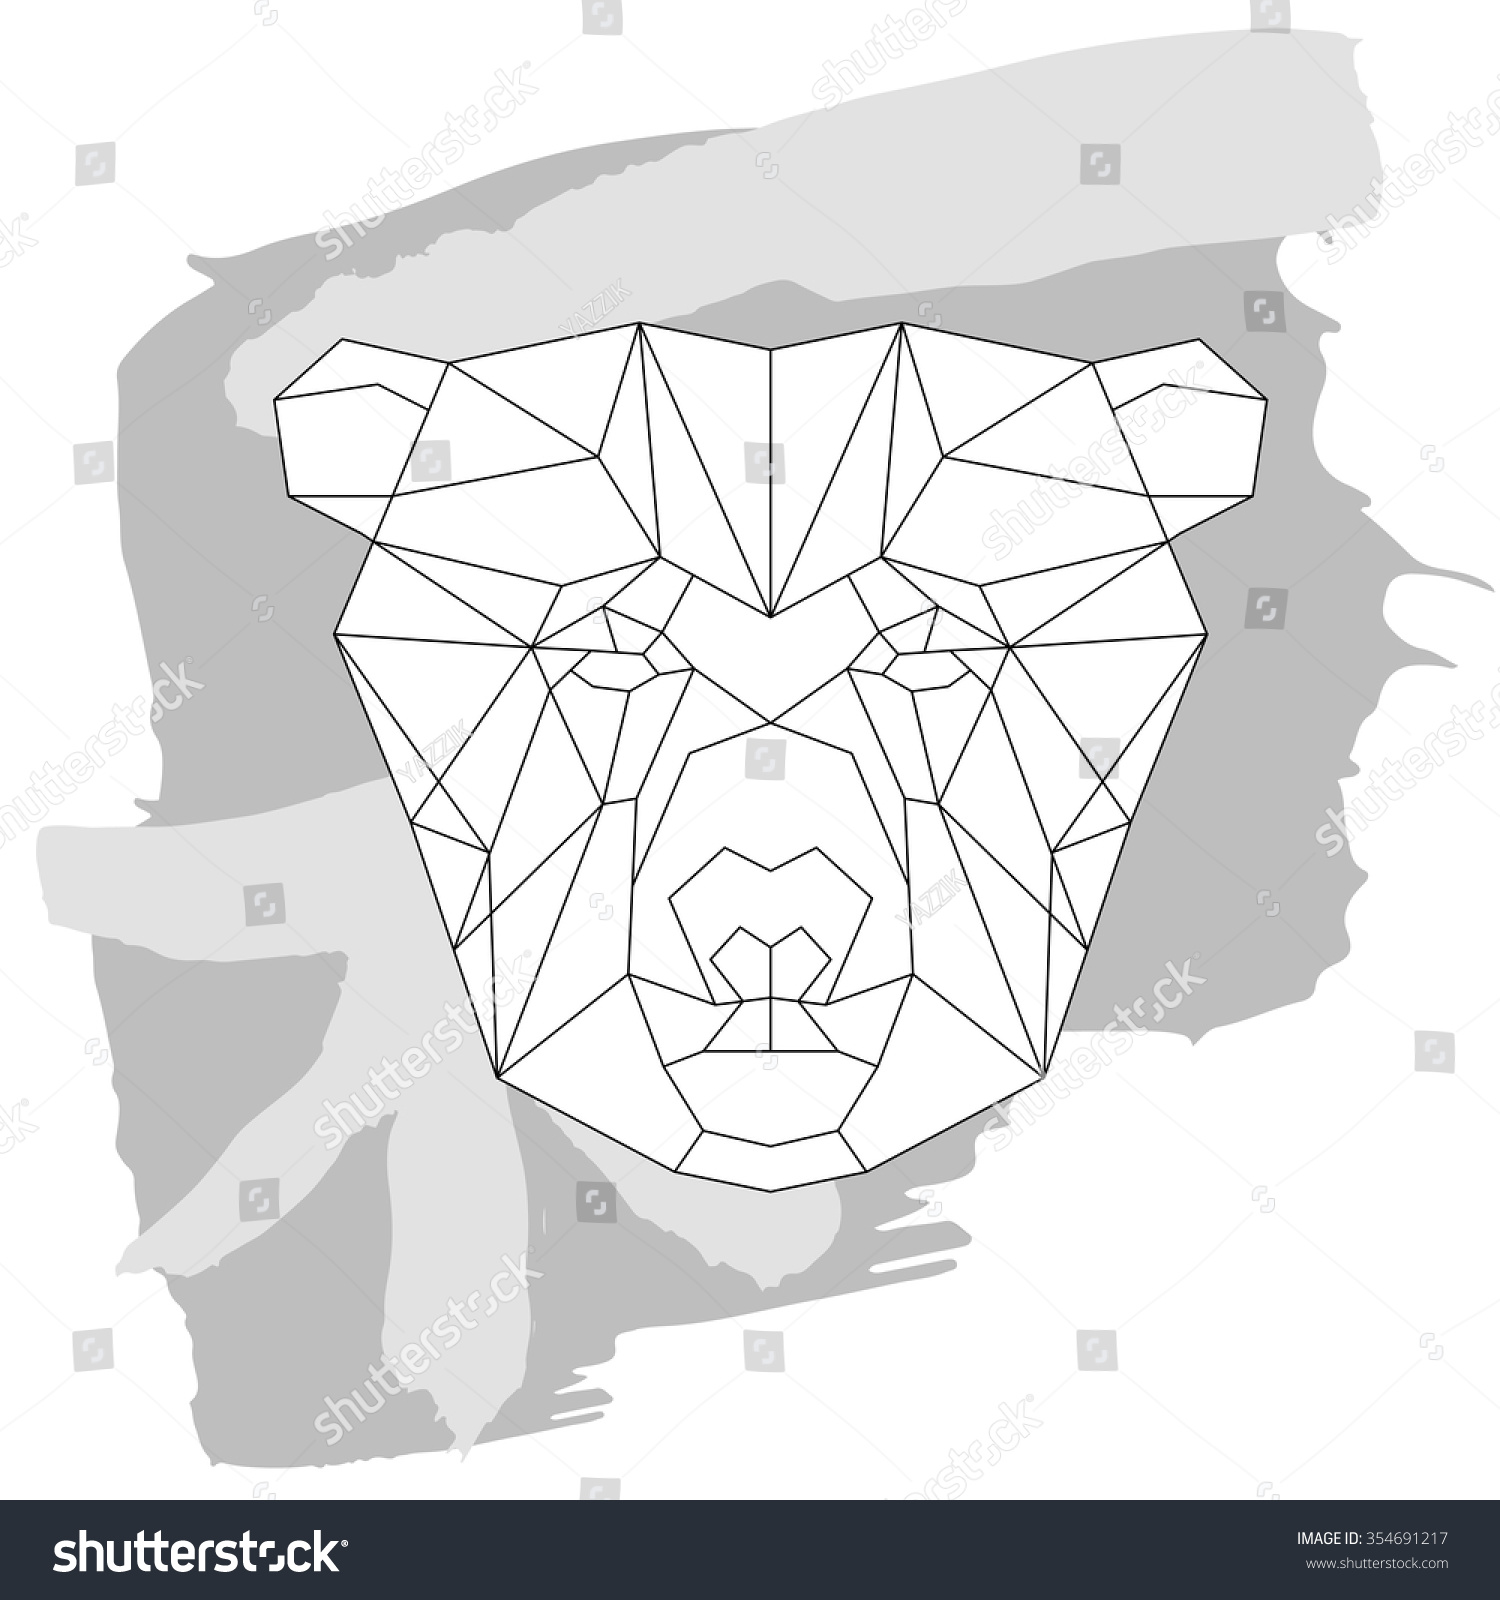 Tiger head triangular icon geometric trendy stock vector image - Bear Head Triangular Icon Geometric Pattern Trendy Line Design Vector Illustration Ready For Tattoo